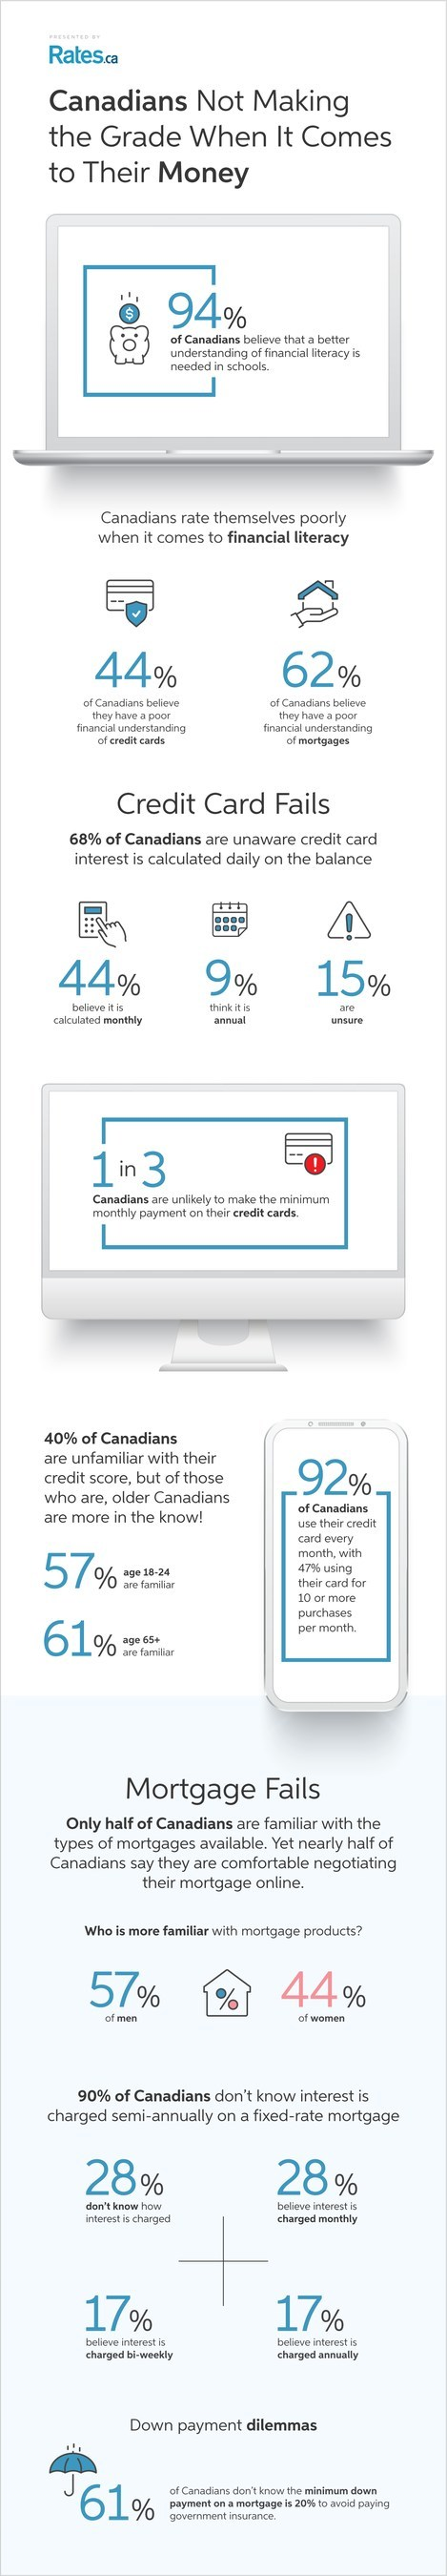 """Many Canadians grade themselves """"C"""" or worse when it comes to money matters: national survey from Rates.ca (CNW Group/Rates.ca)"""